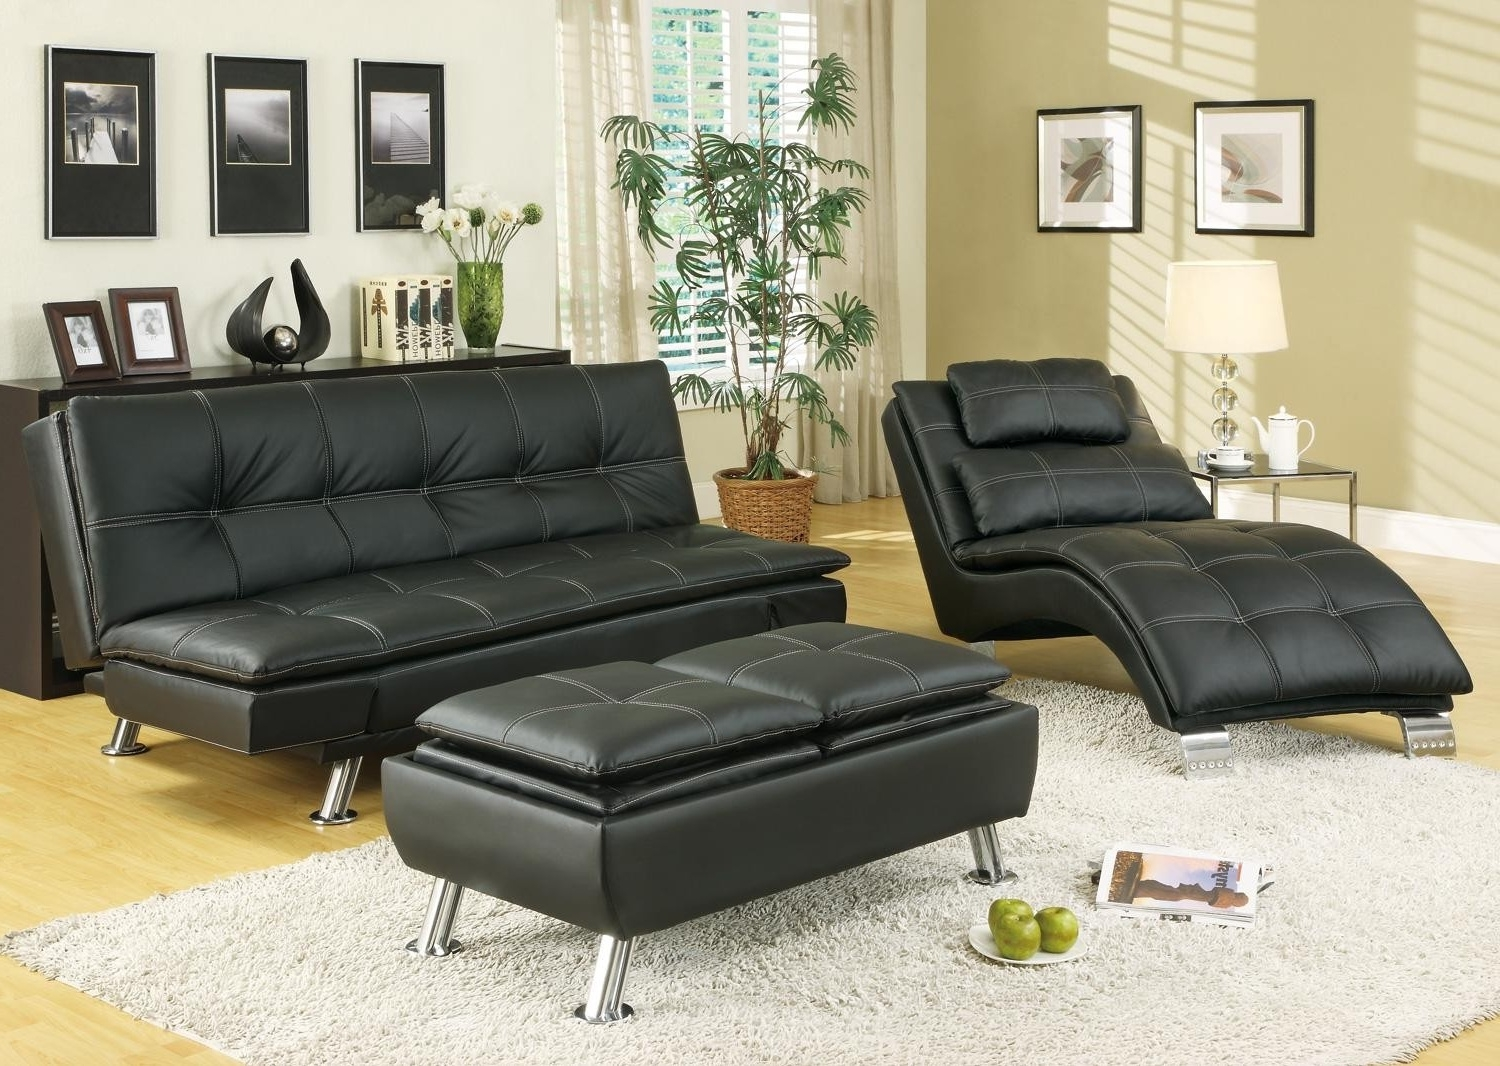 Image of: Comfy Futons Target Set Black Tufted Leather